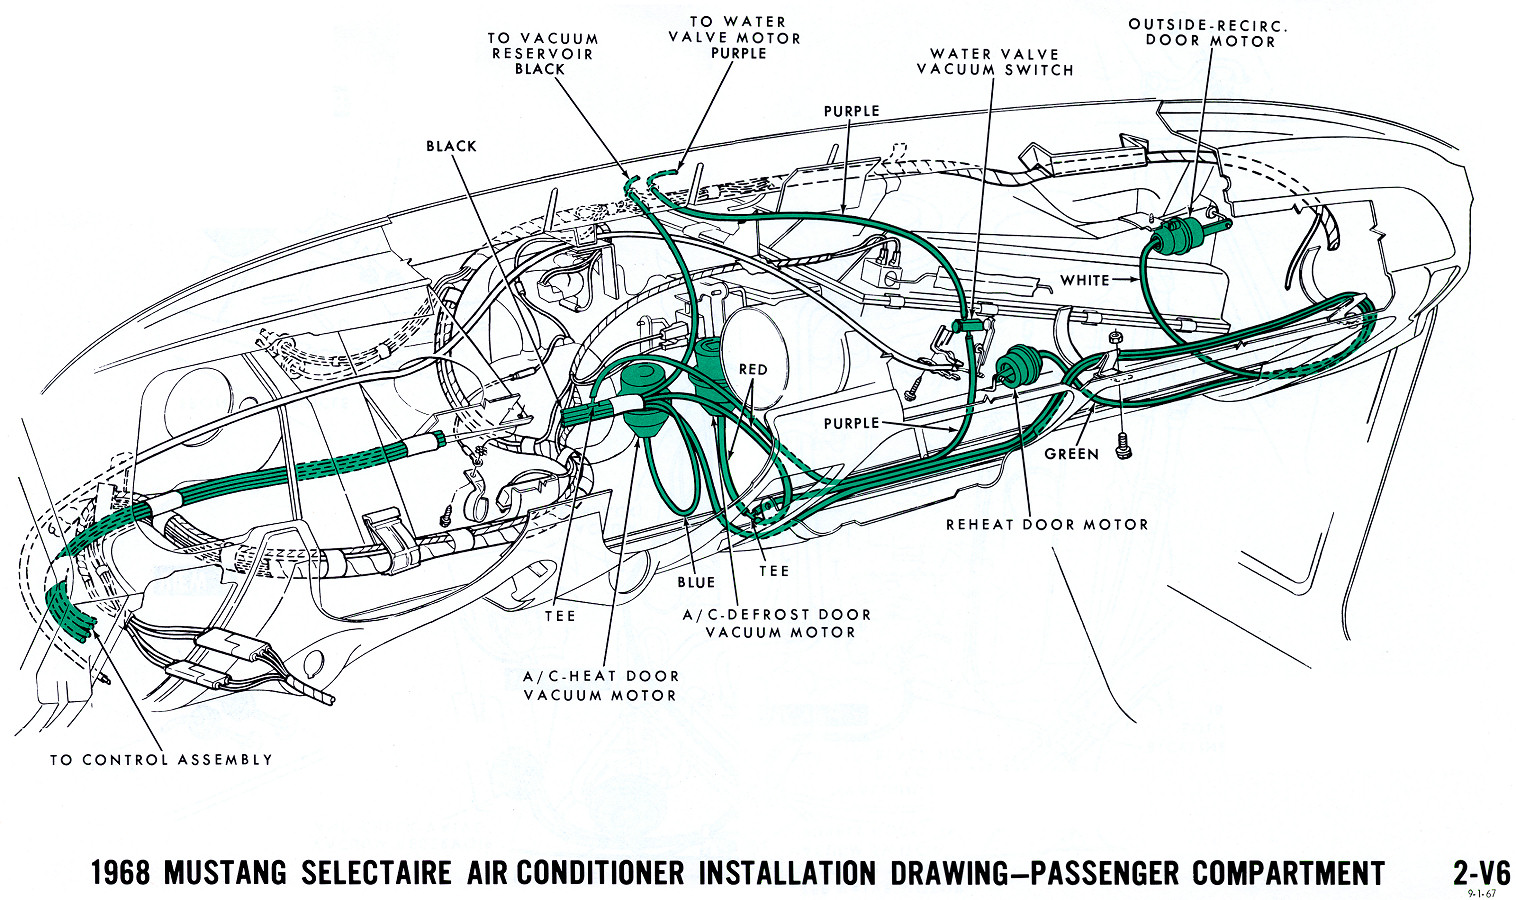 Mustang Vacuum Diagram Air Conditioning Interior on 1971 dodge dart wiring diagram